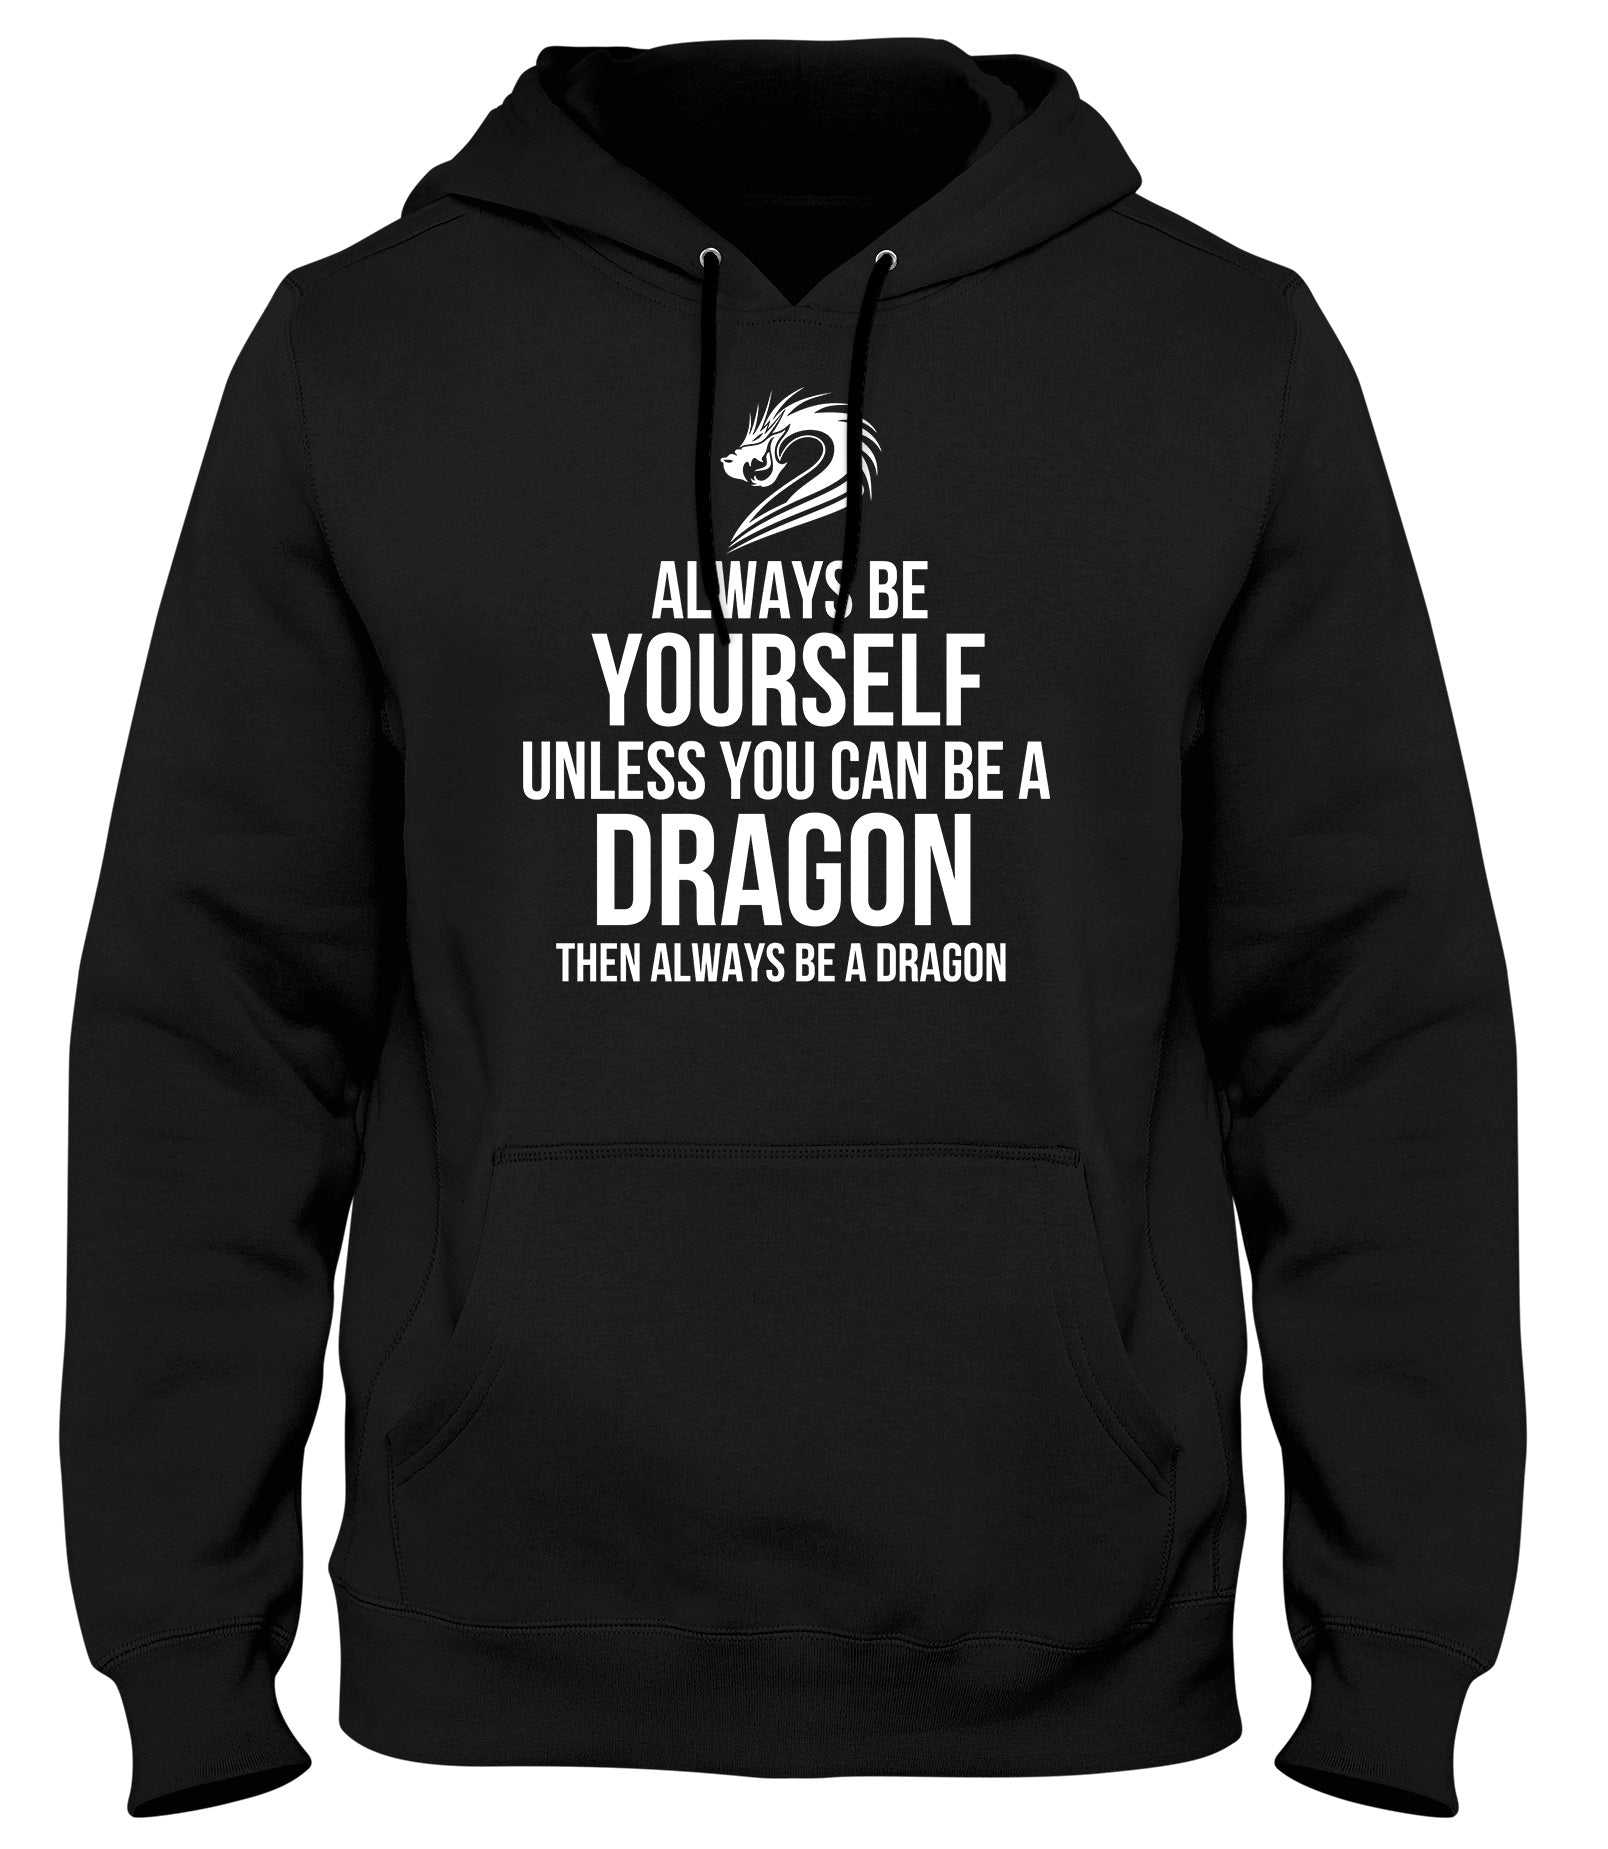 ALWAYS BE YOURSELF UNLESS YOU CAN BE A DRAGON THEN ALWAYS BE A DAGON MENS WOMENS LADIES UNISEX FUNNY SLOGAN HOODIE